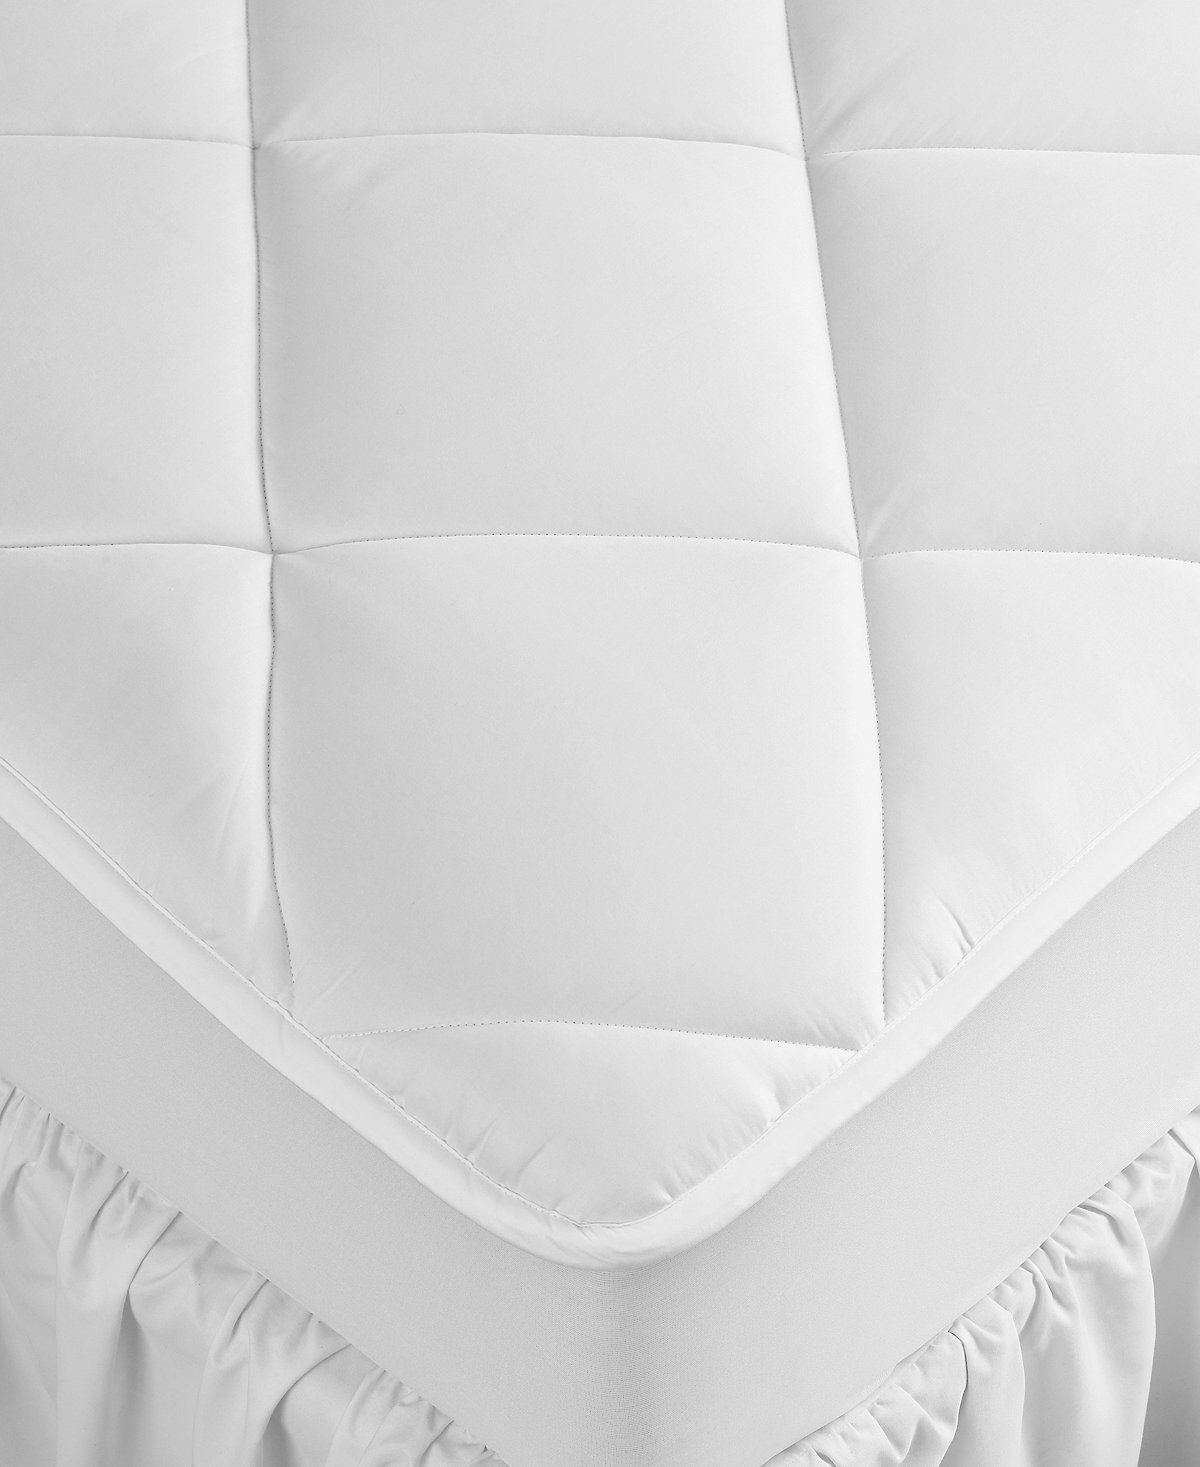 Hotel Collection Extra Deep King Mattress Pad, Hypoallergenic, Down Alternative Fill, 500 Thread Count Cotton